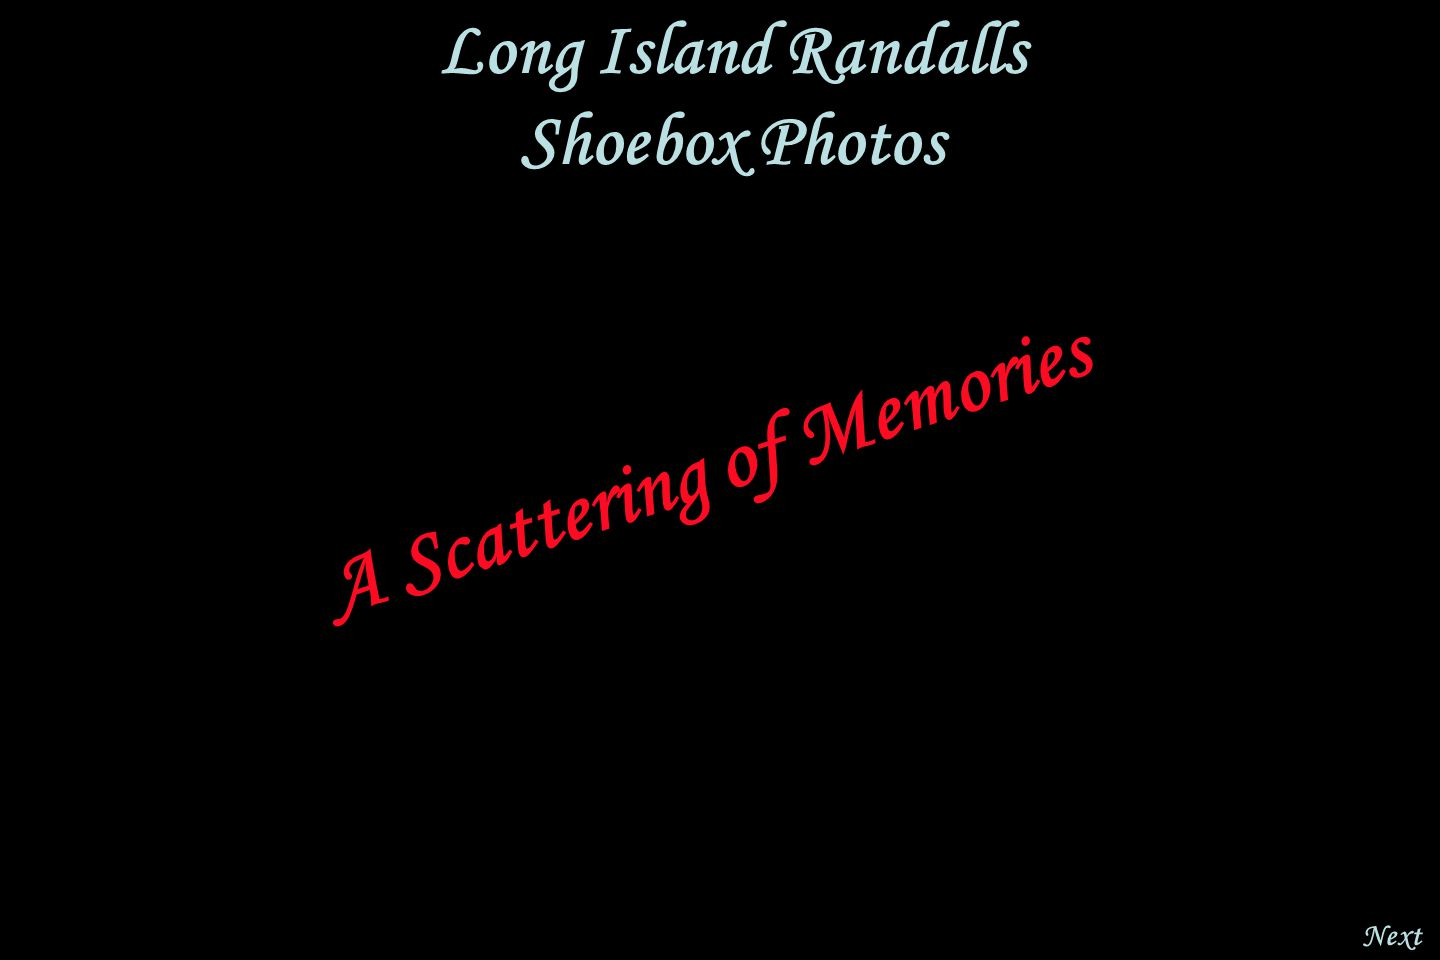 Next Long Island Randalls Shoebox Photos A Scattering of Memories